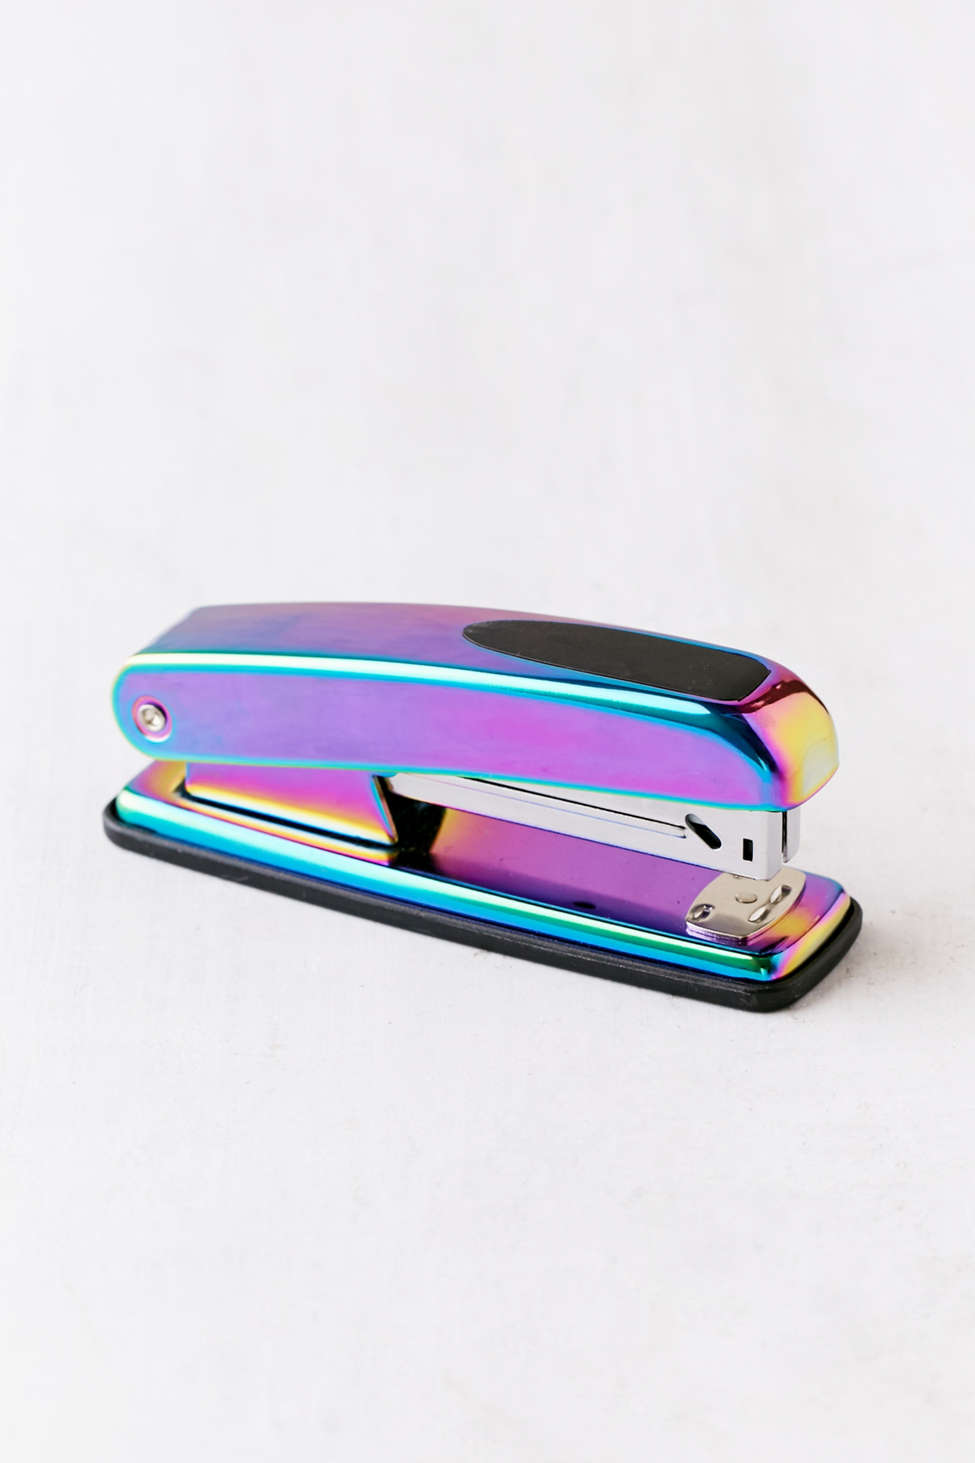 Slide View: 1: Electroplated Stapler